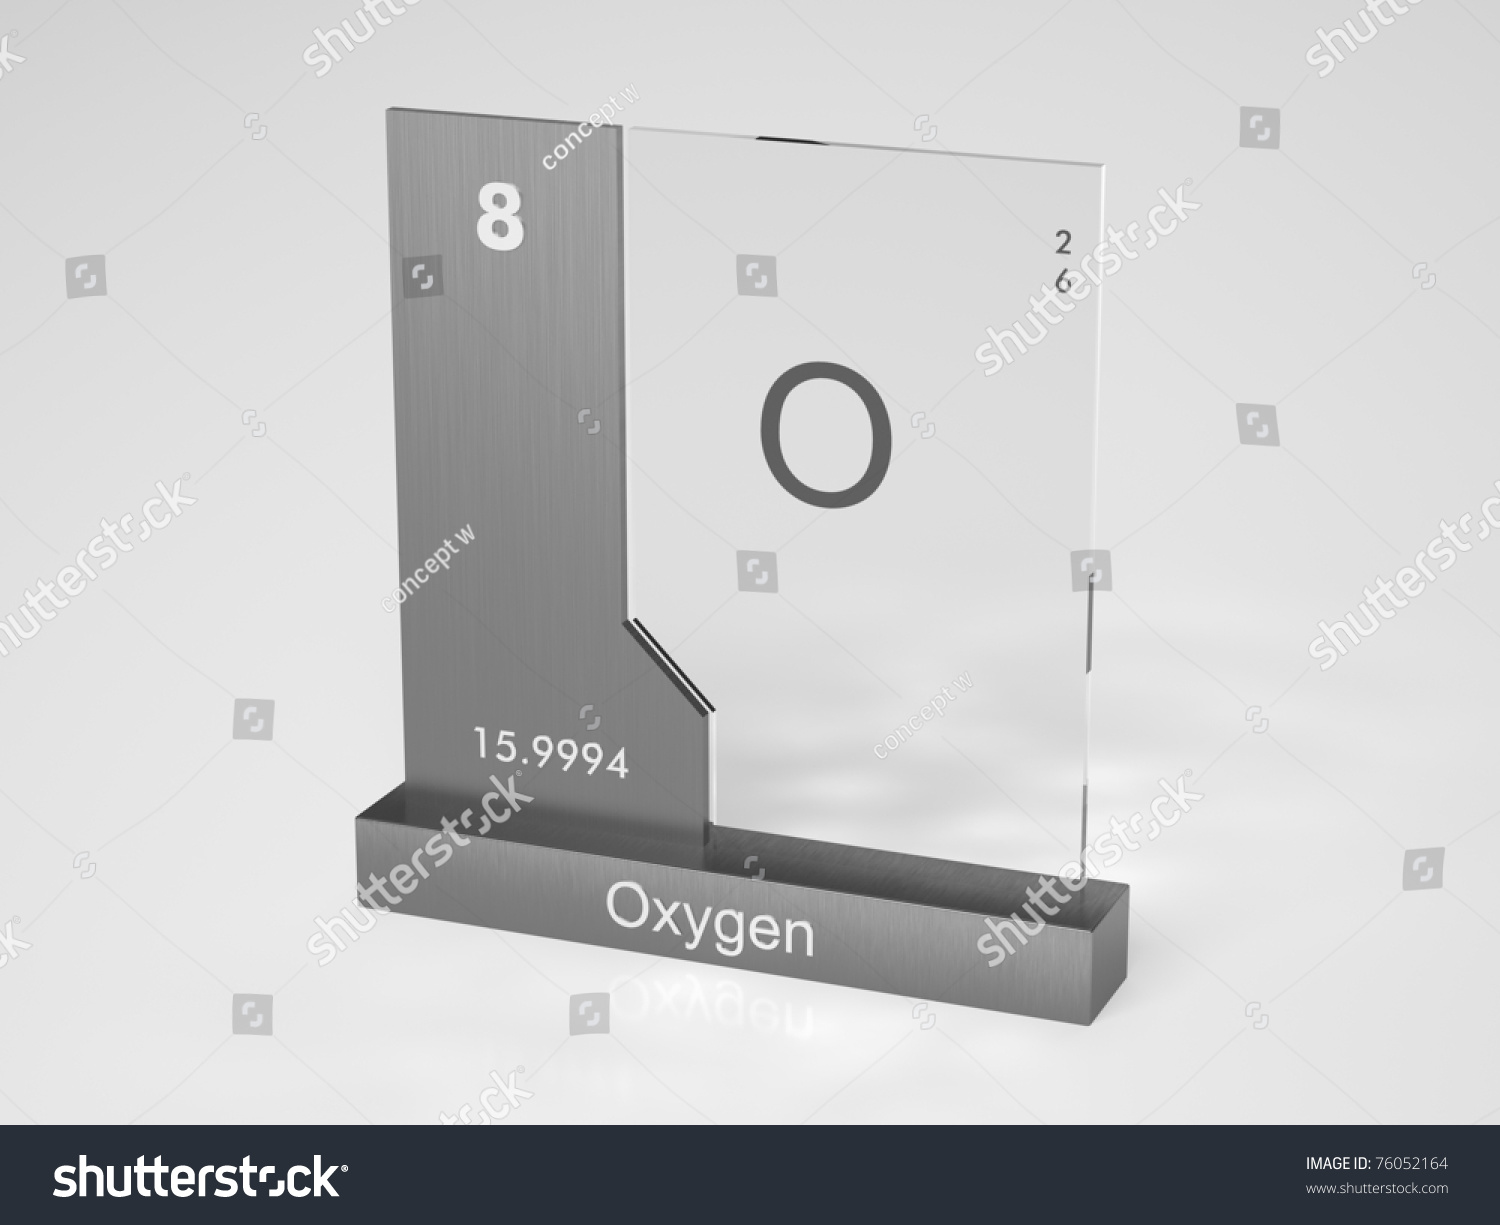 Oxygen symbol o chemical element periodic stock illustration oxygen symbol o chemical element of the periodic table buycottarizona